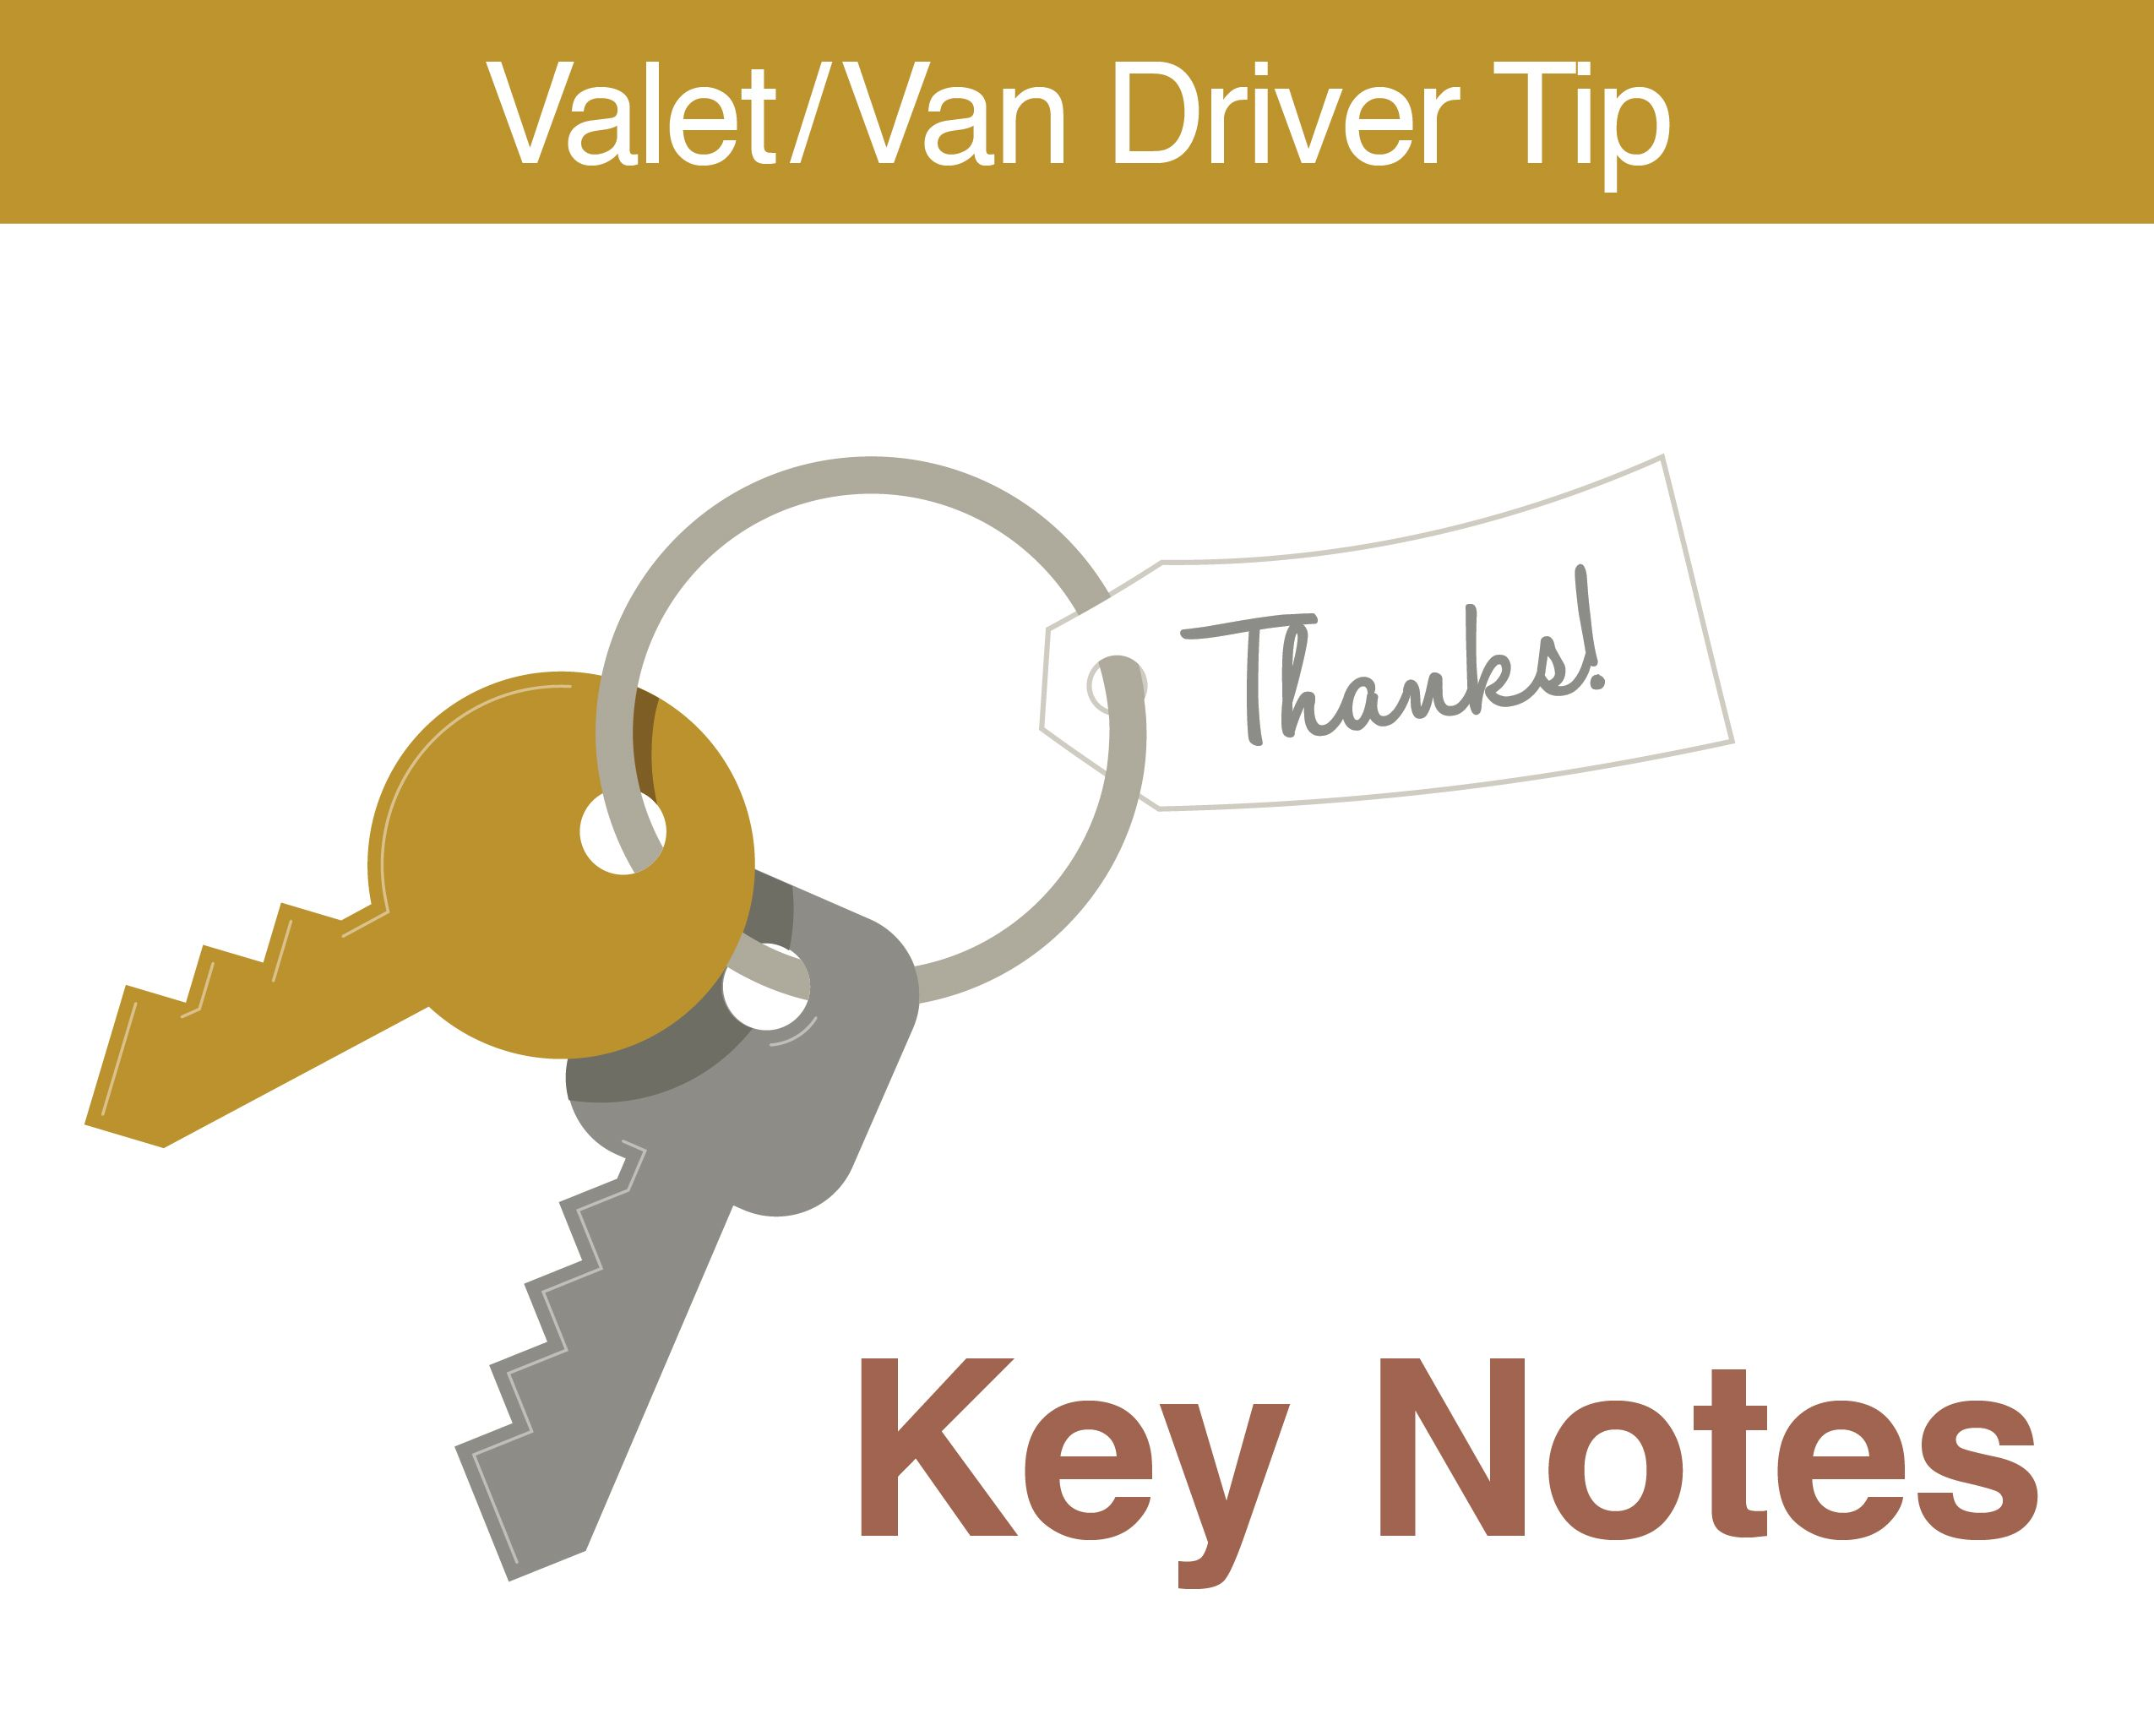 Leave Thank You Notes For Your Valet Team Members In The Key